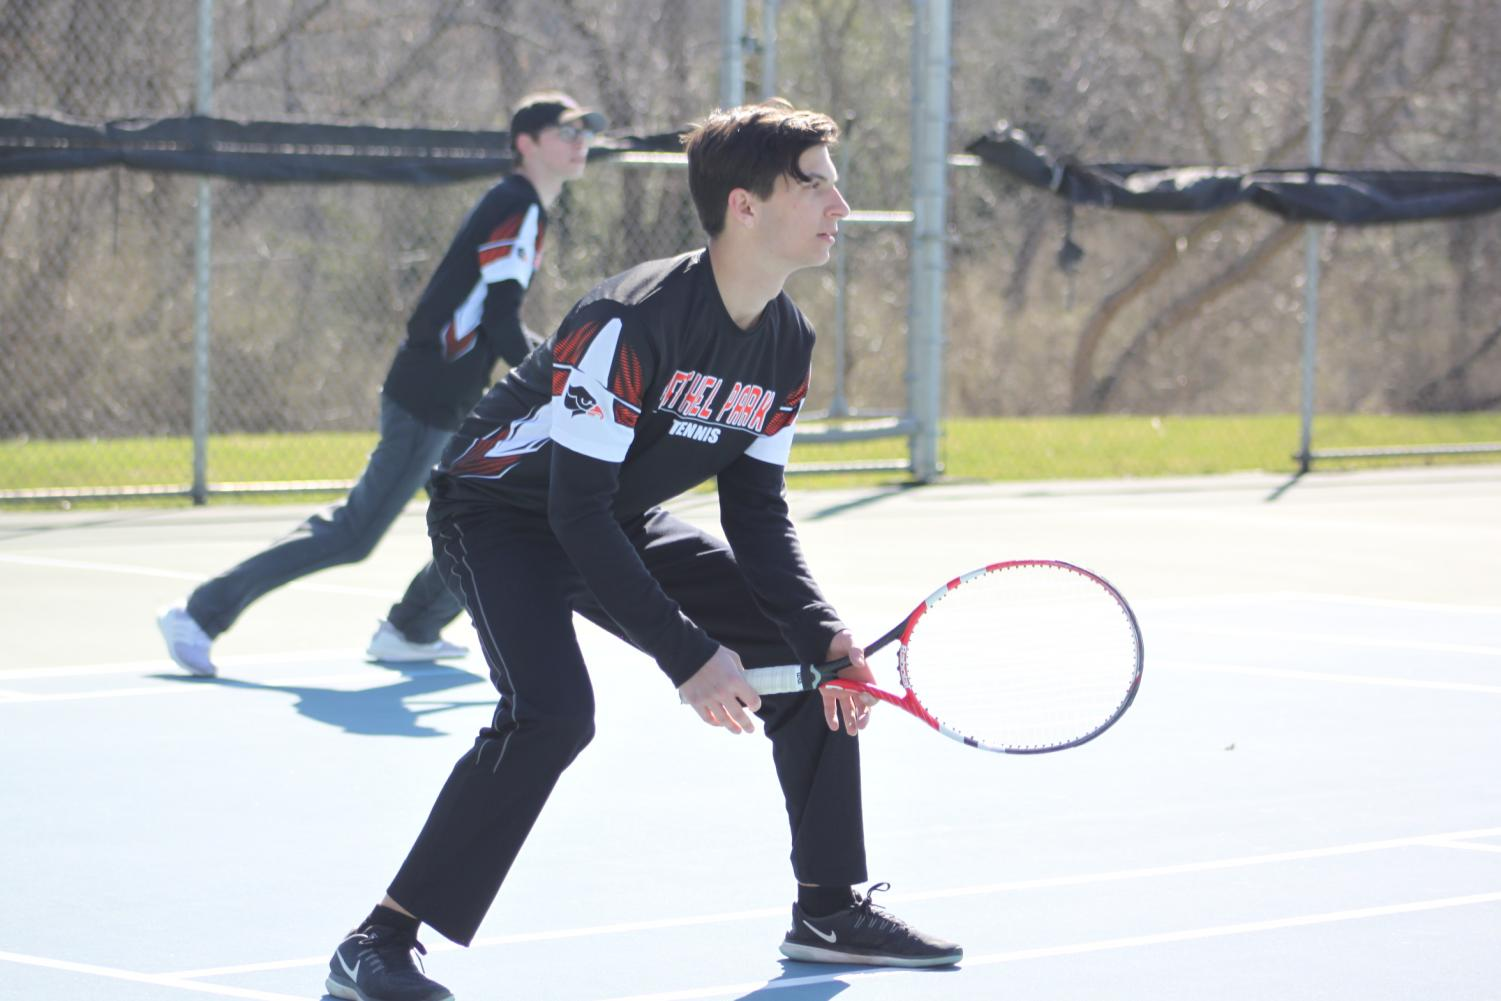 Shane+and+Andrew-+2nd+doubles+